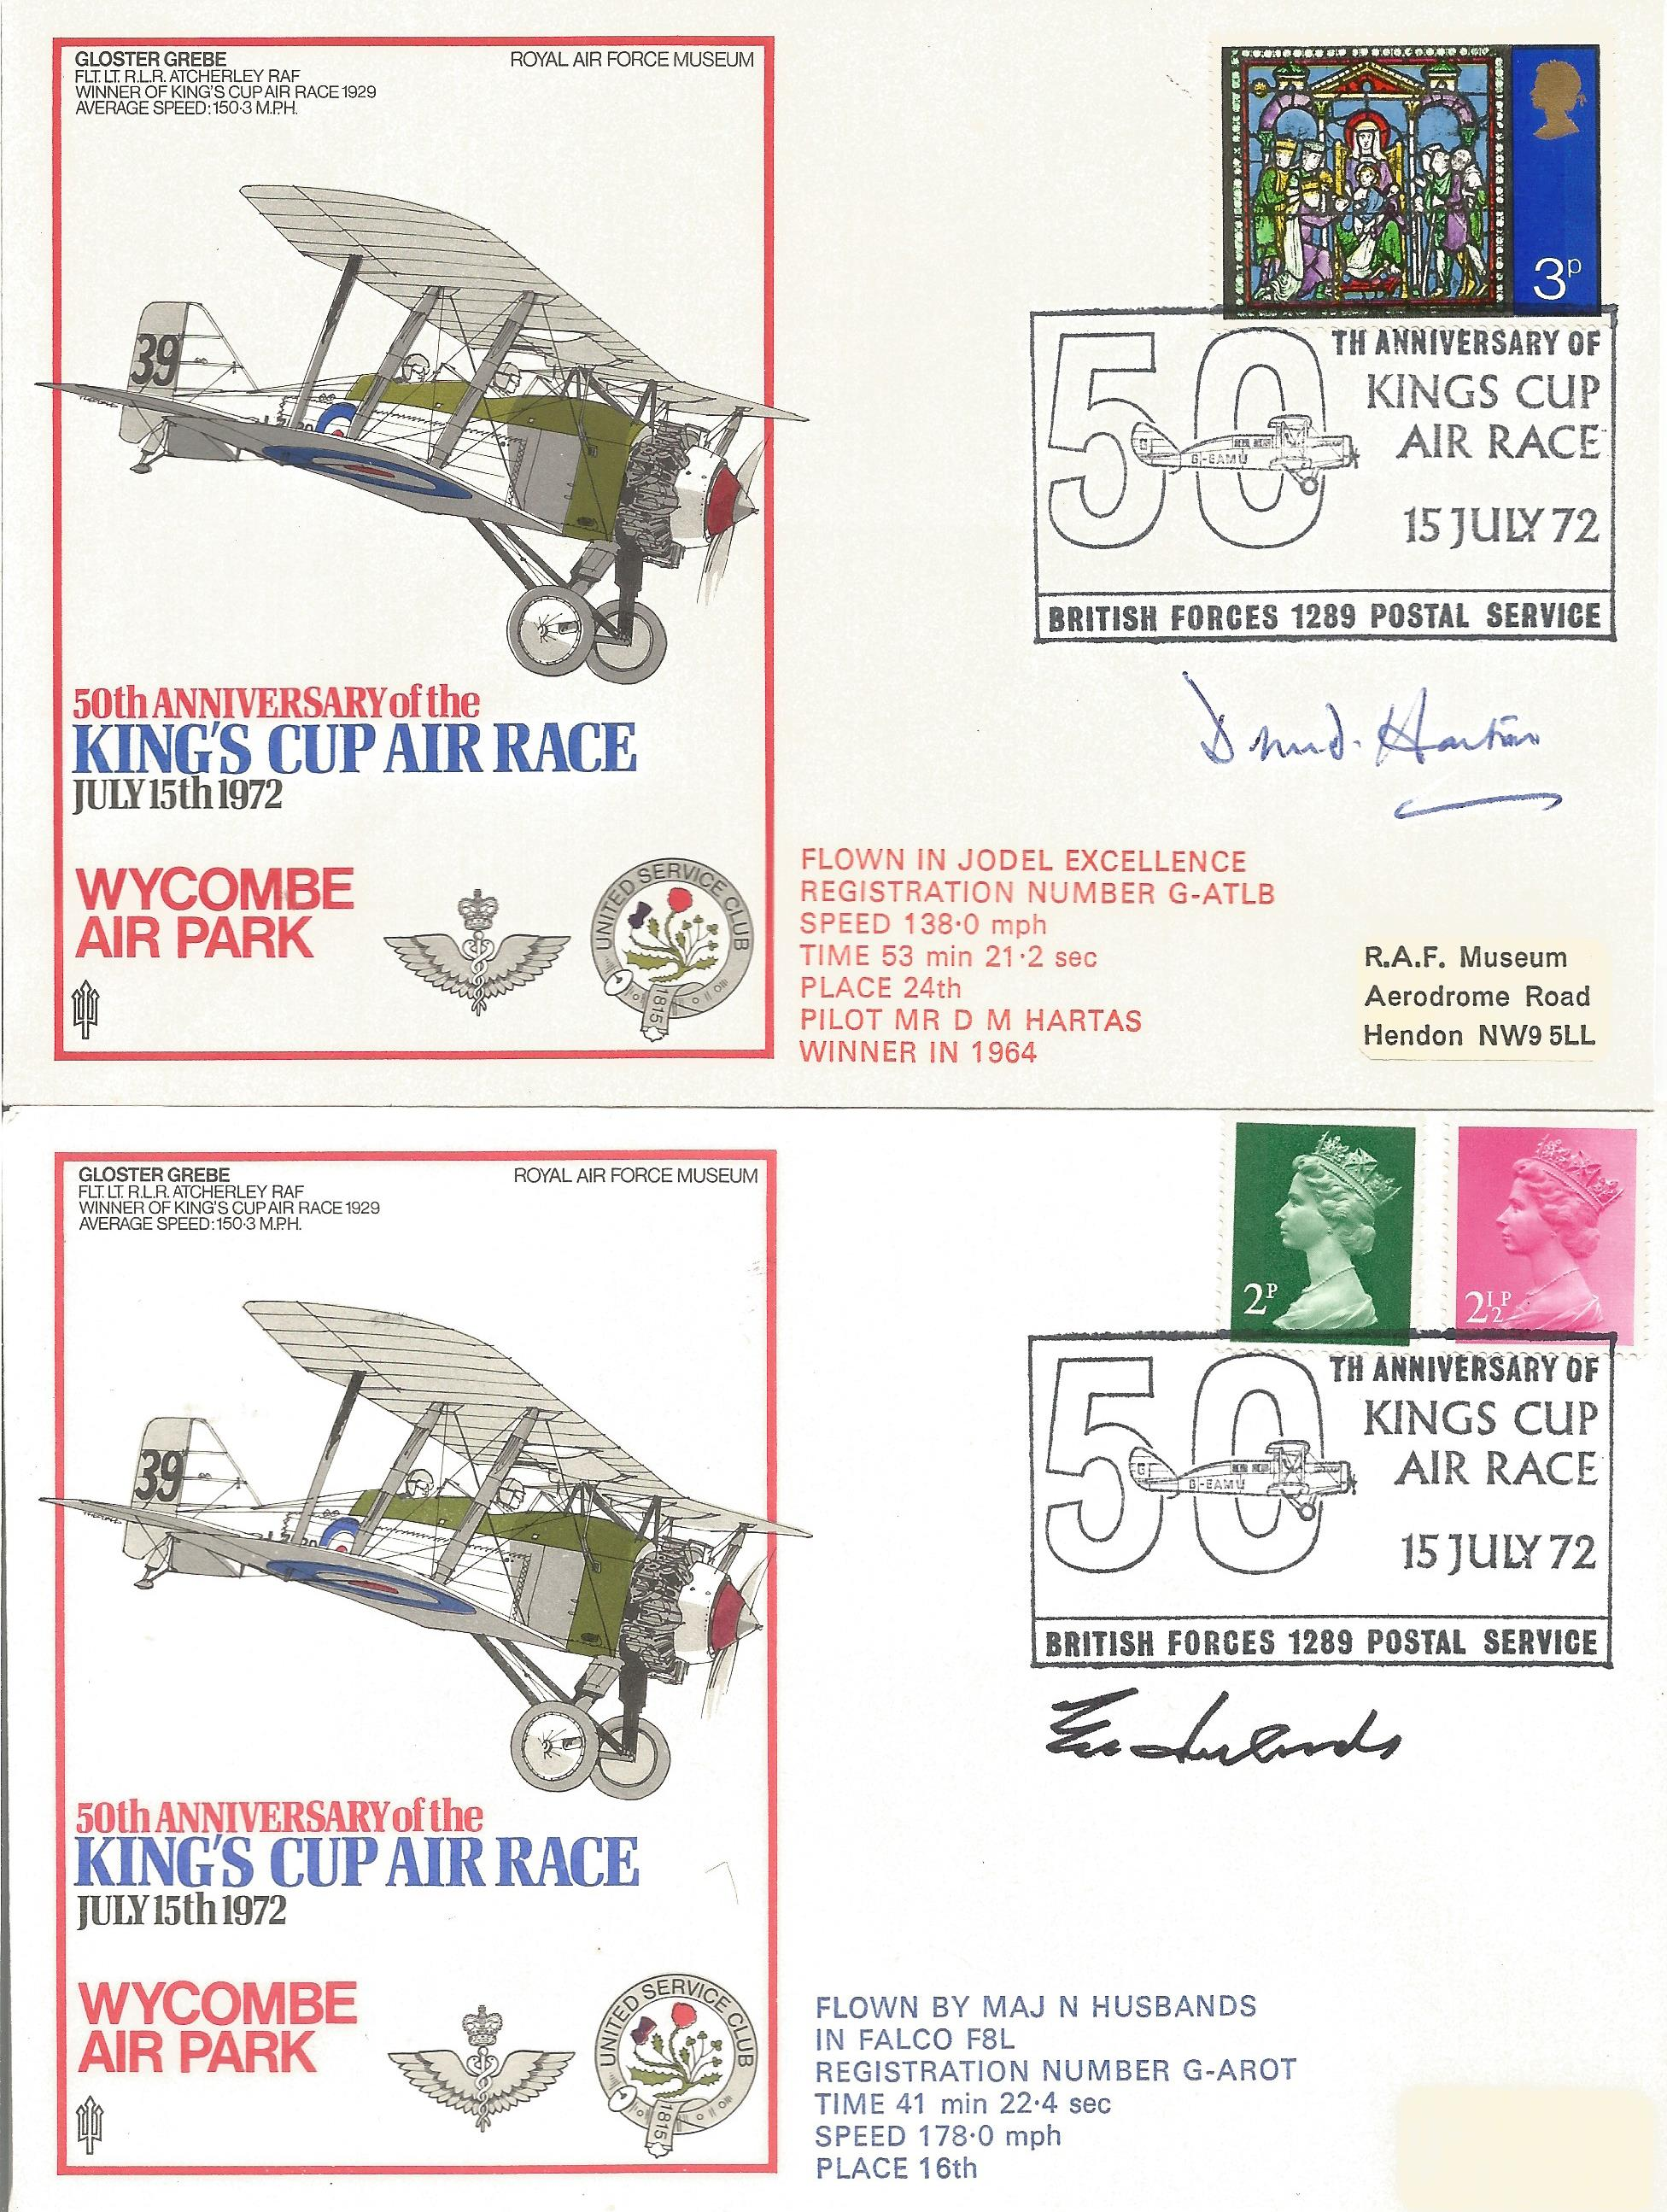 RAF Kings Cup Air Race Series VIP signed collection. The full set of 43 1972 Kings Cup Air Race - Image 5 of 6